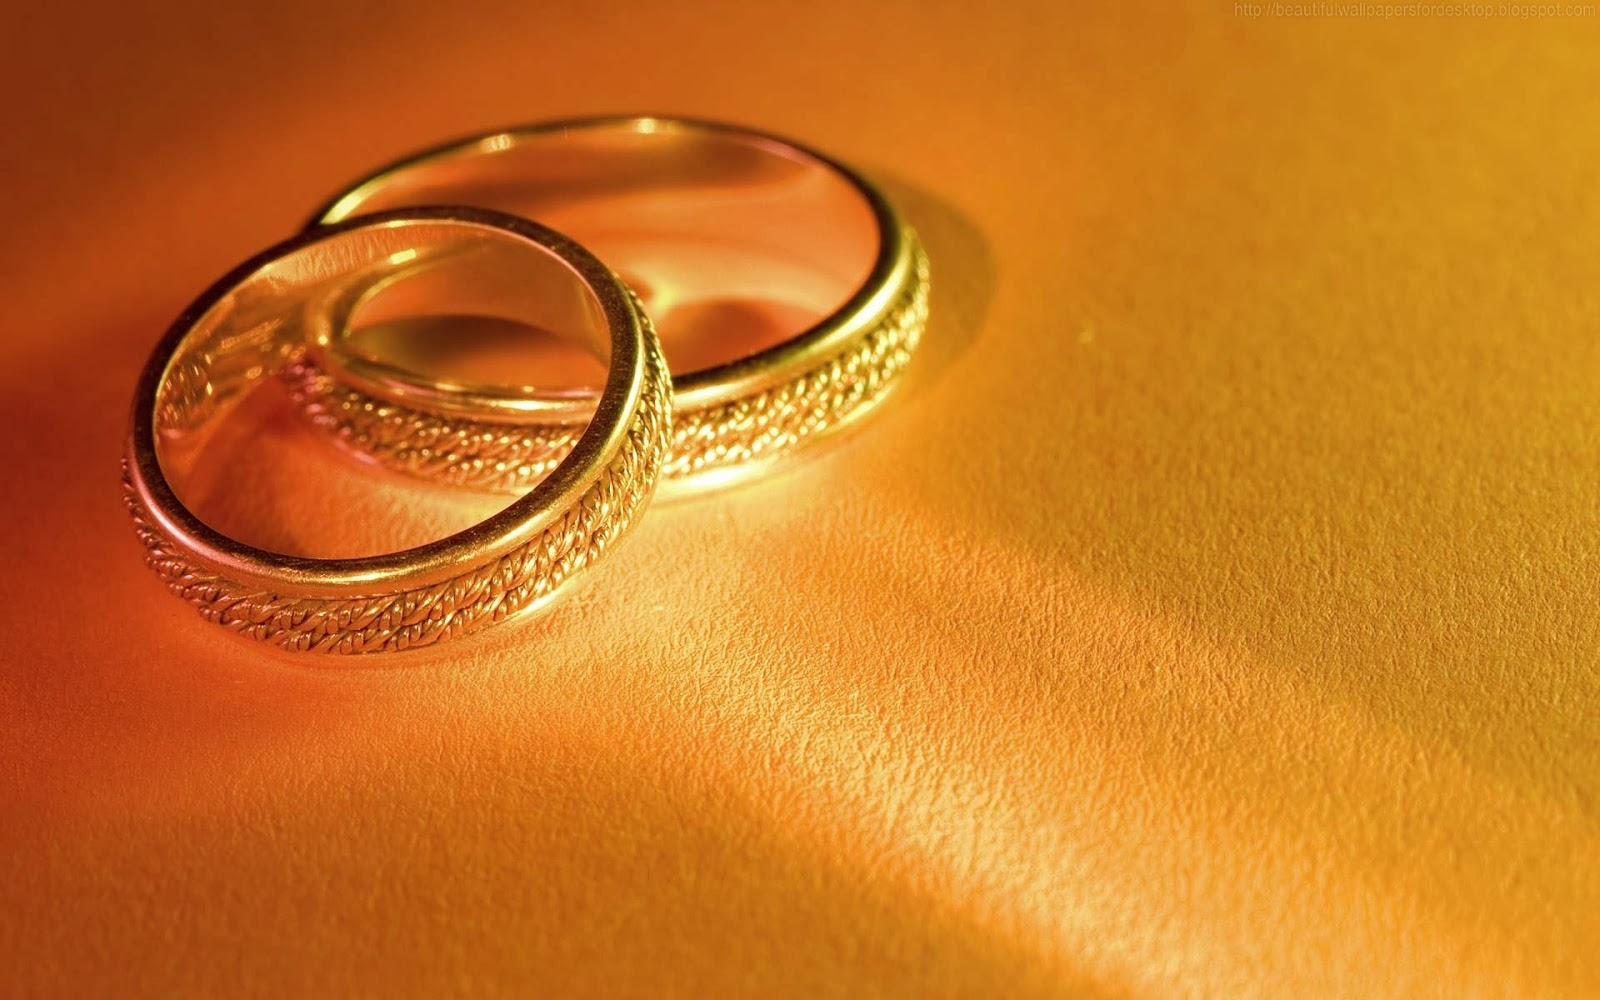 engagement rings hd wallpapers image wallpapers With wedding ring wallpaper